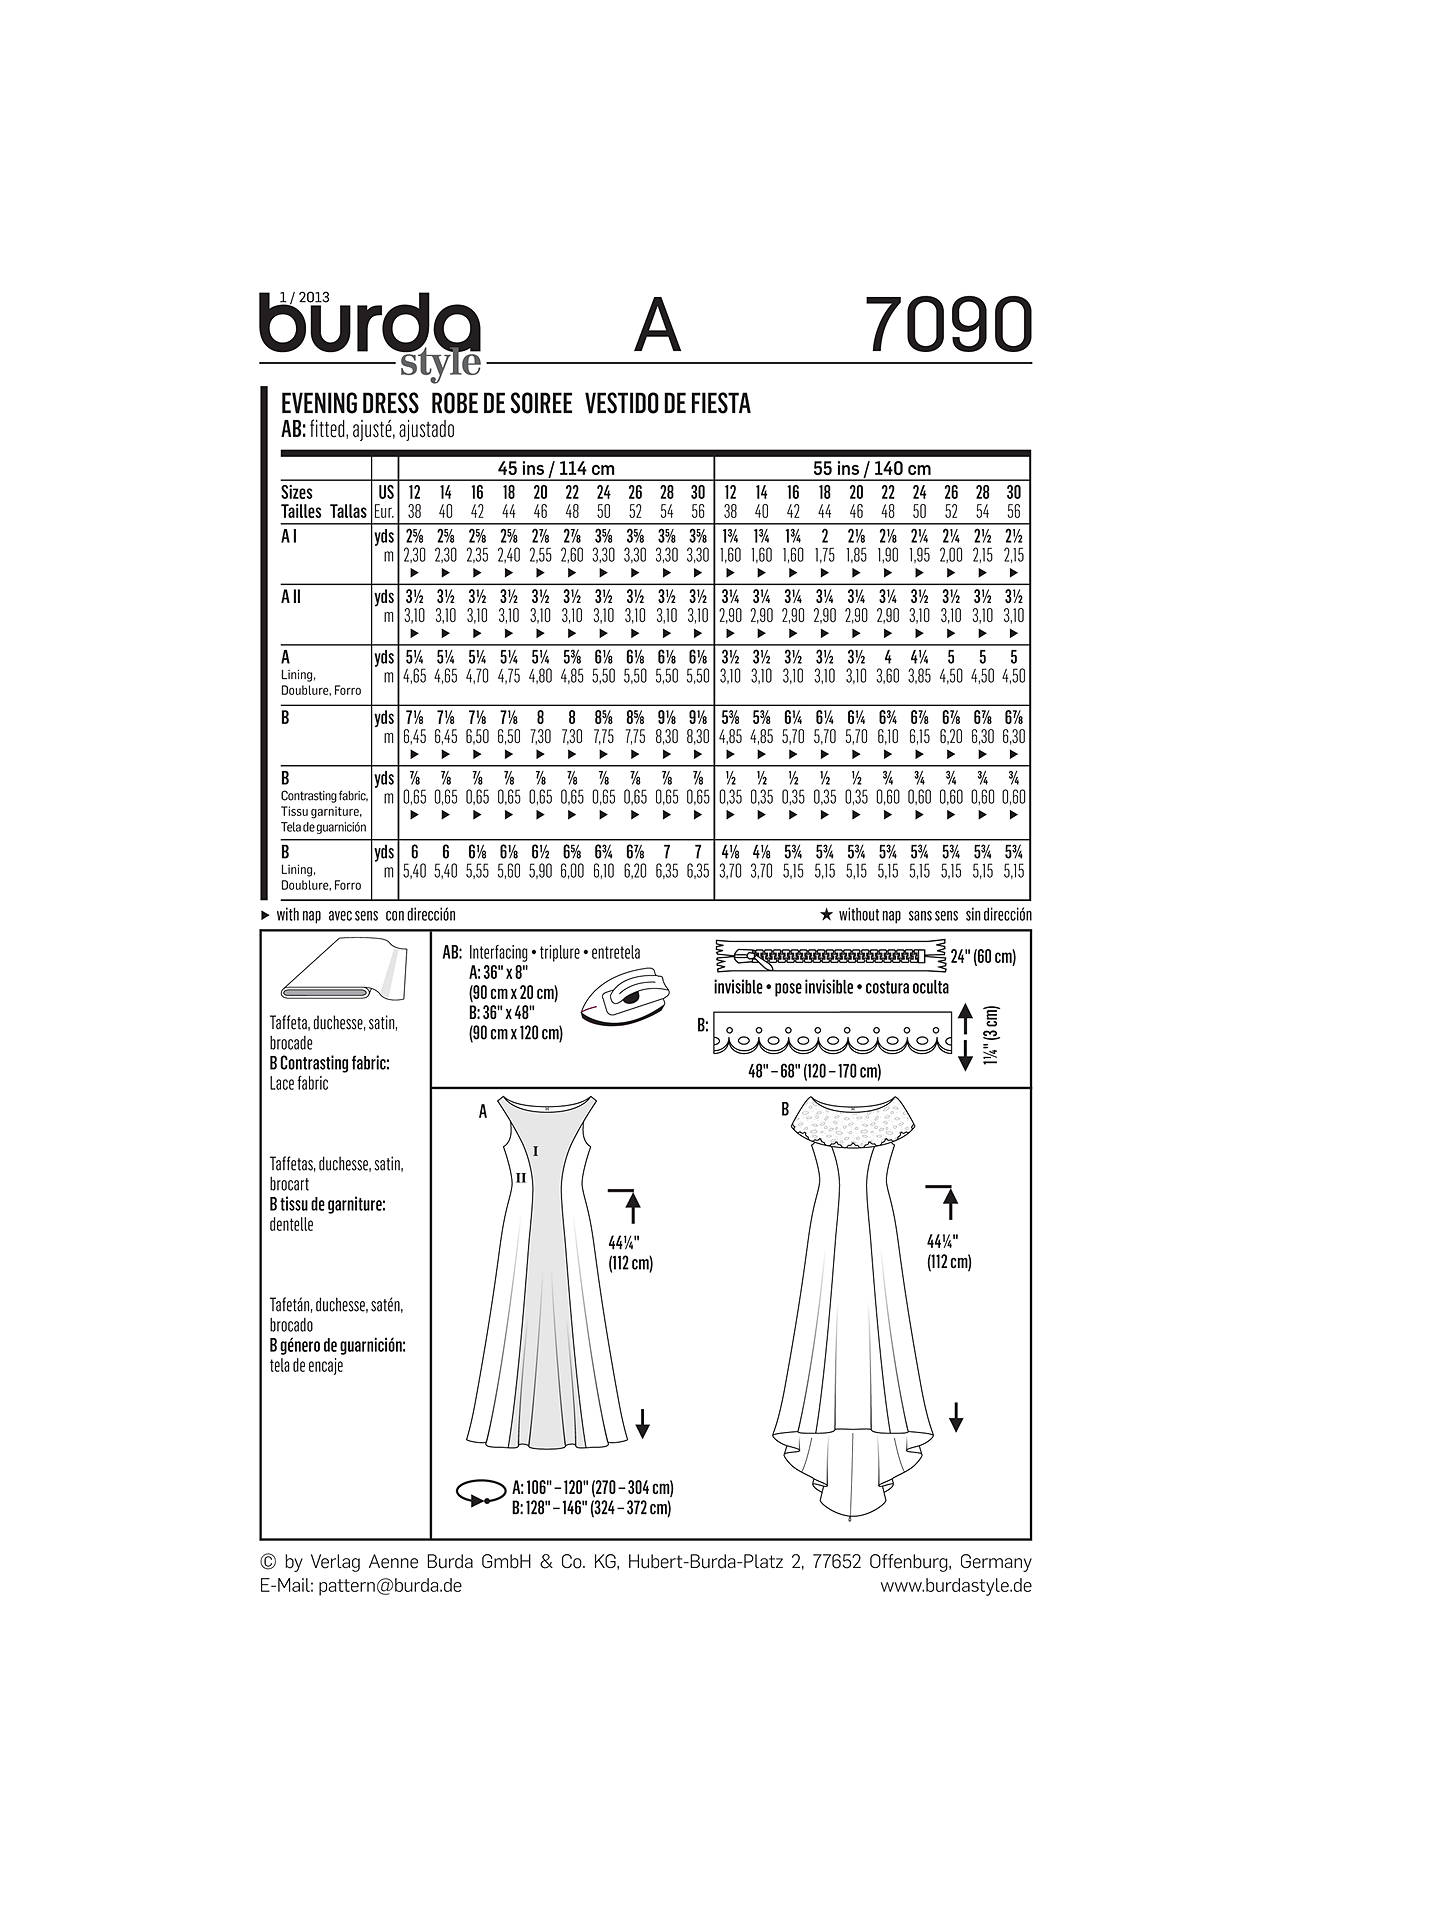 Burda Women\'s Special Occasion Evening & Wedding Gown Sewing Pattern ...